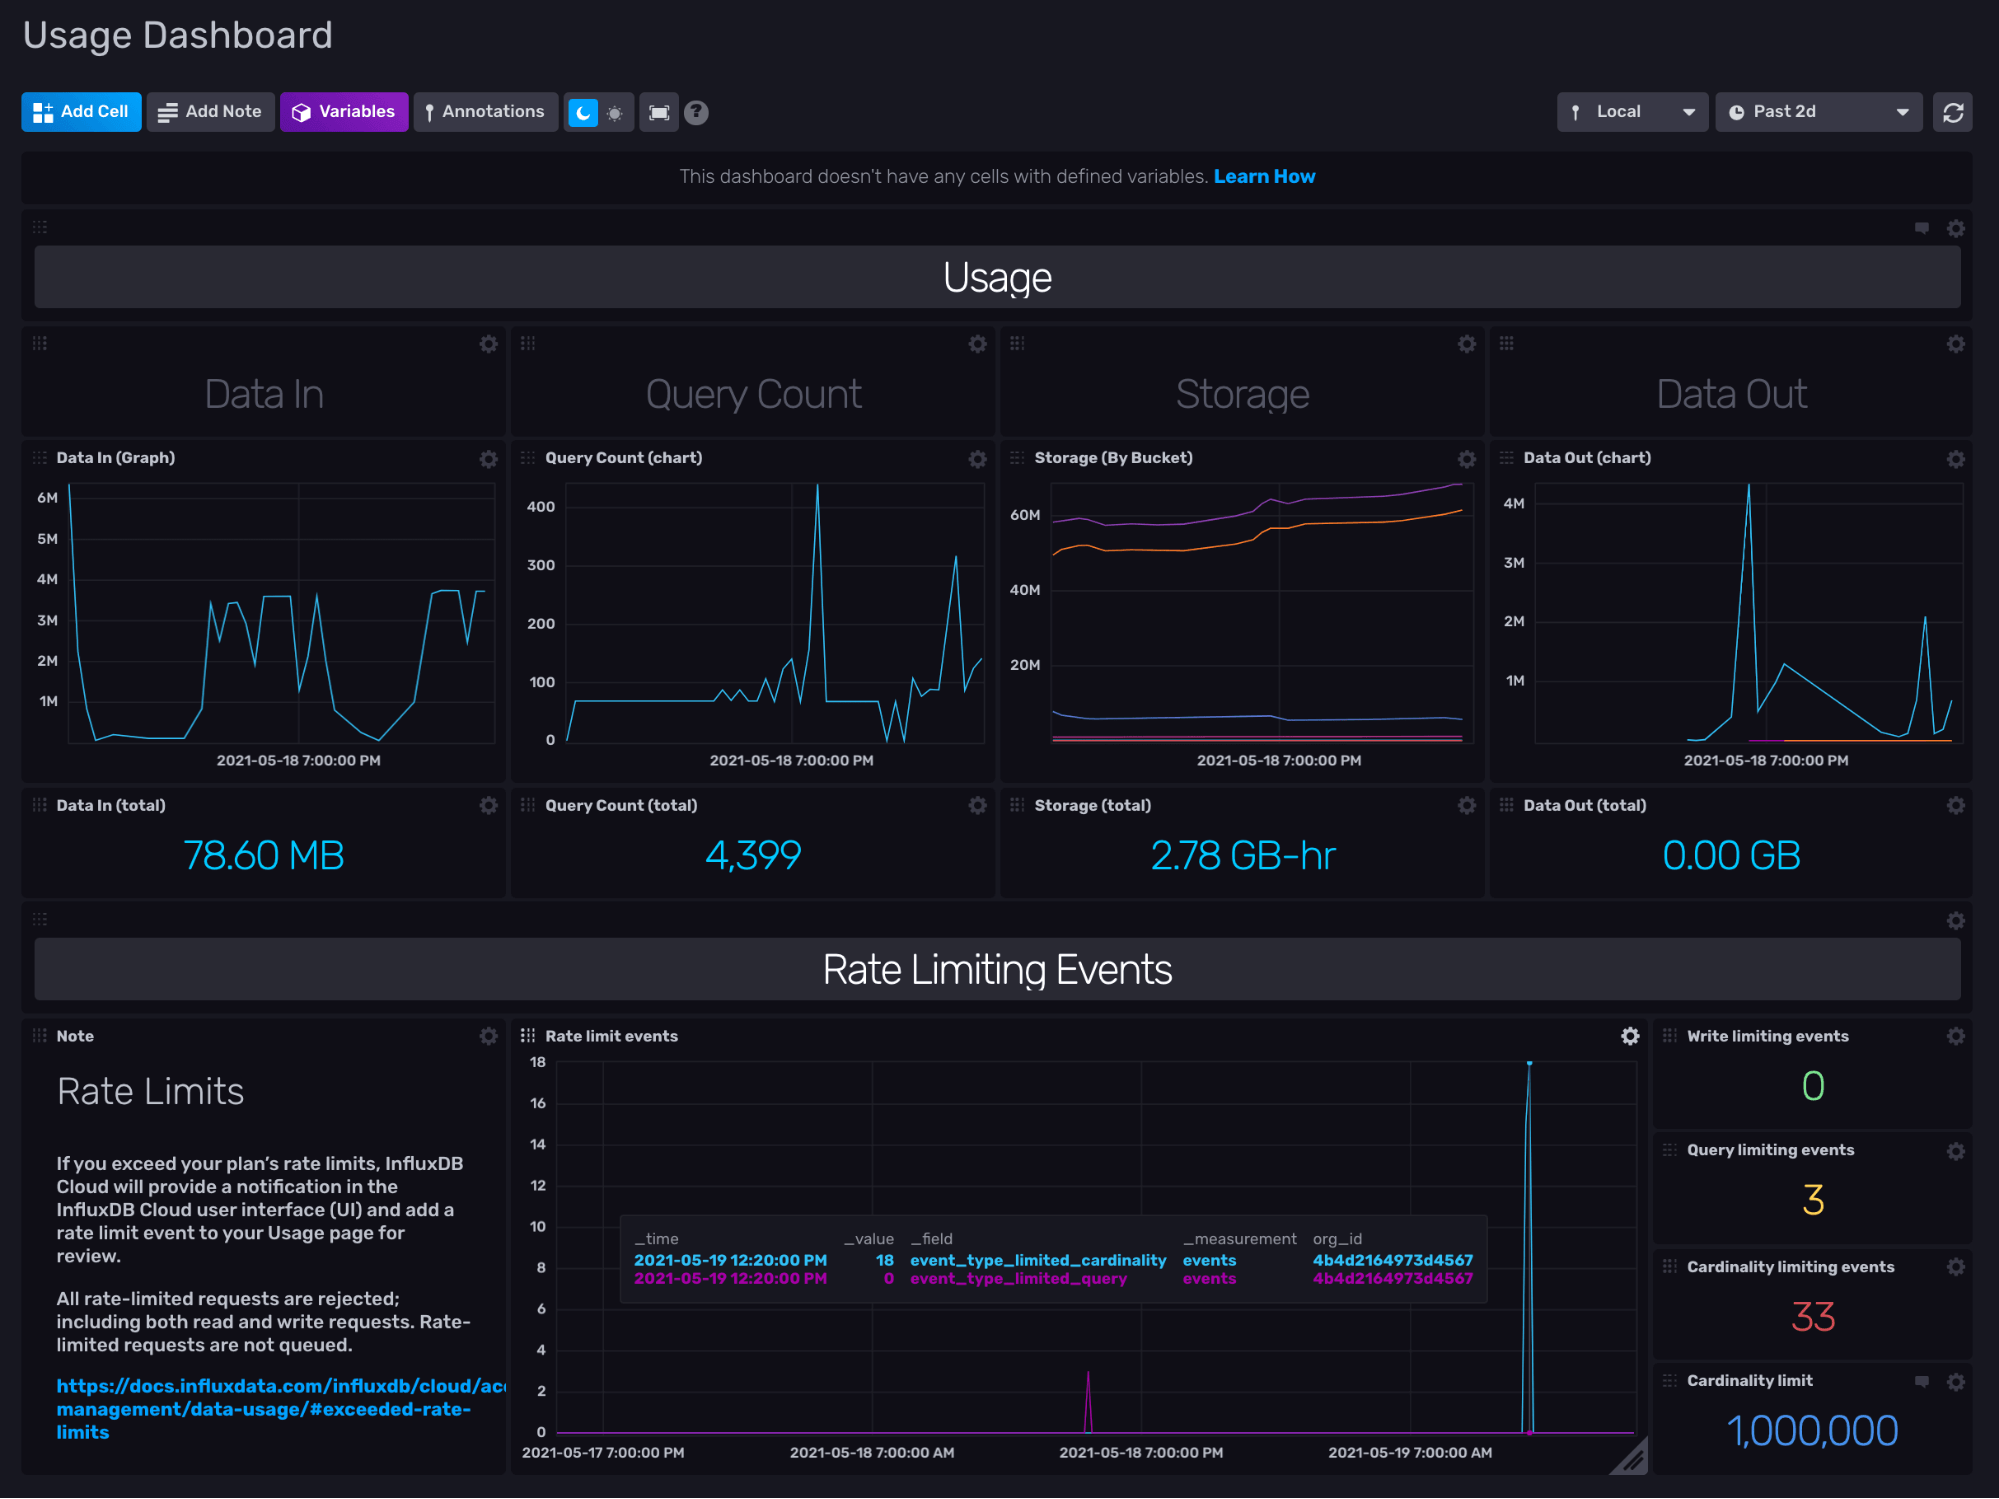 The Usage Dashboard - InfluxDB Cloud Usage Template